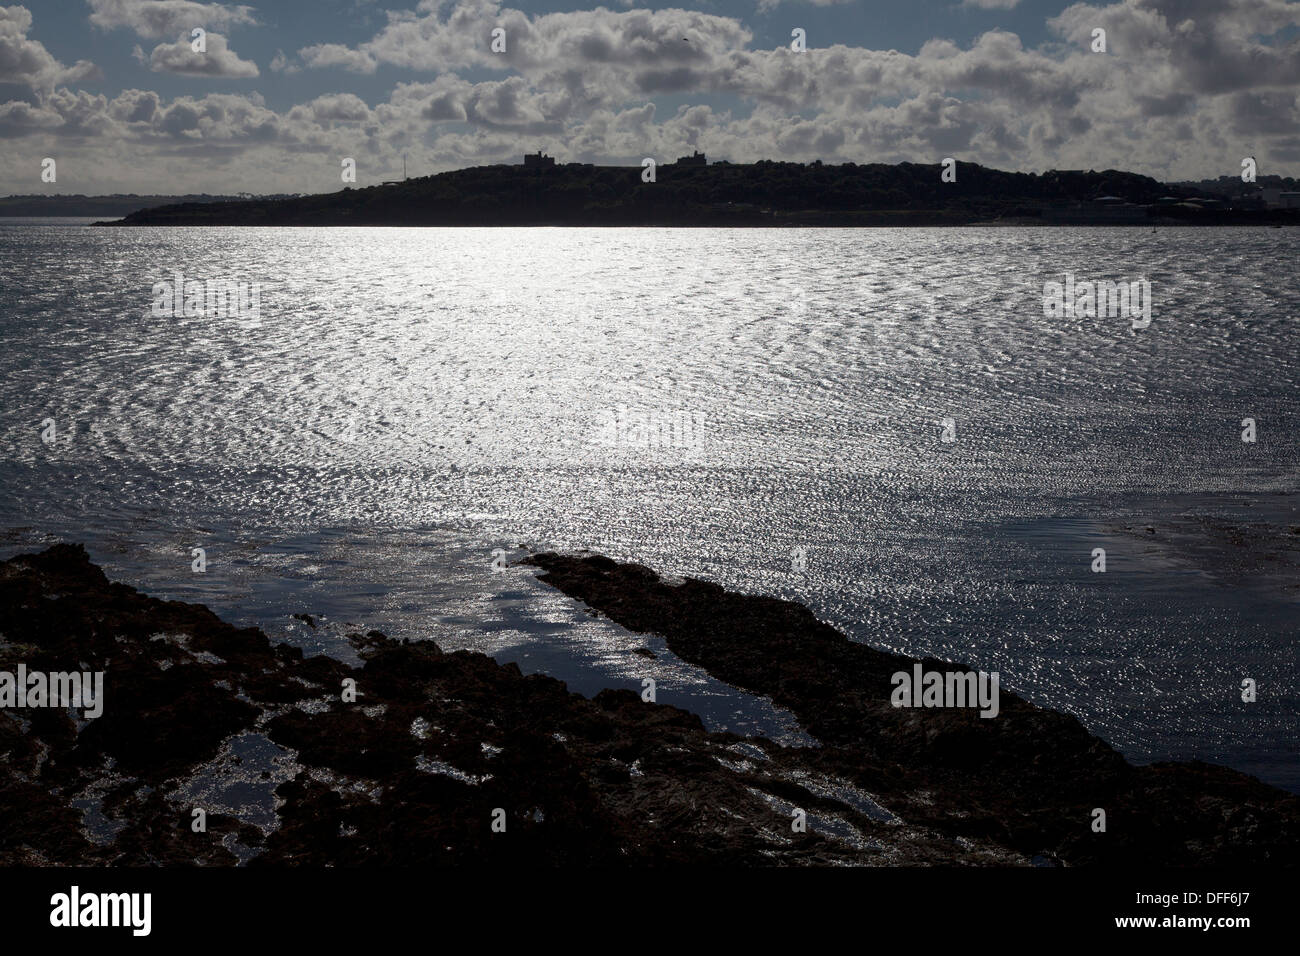 View from the castle across Carrick Roads towards Pendennis Castle, St Mawes, Cornwall - Stock Image